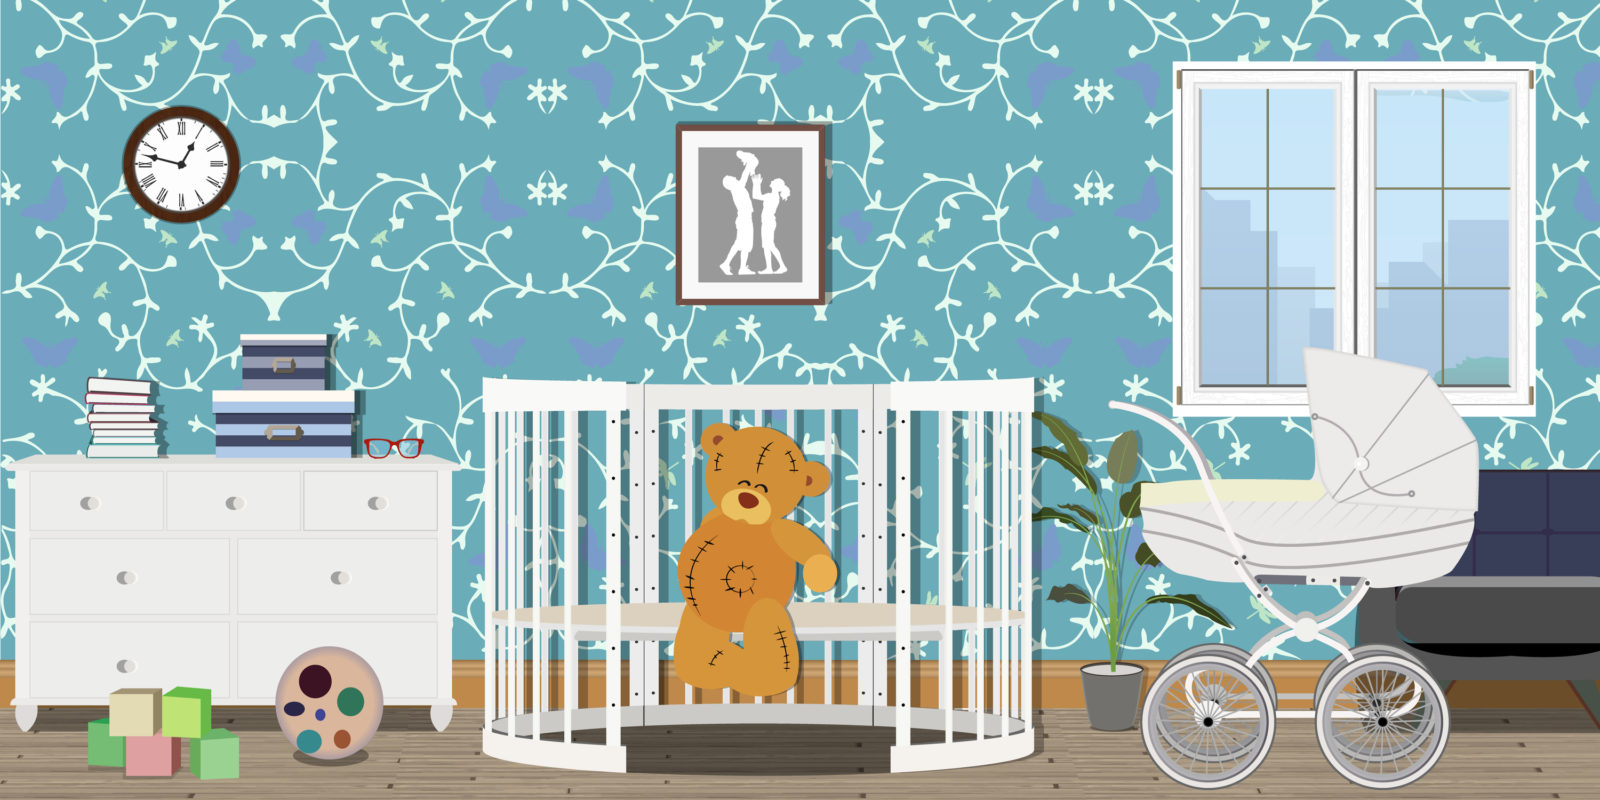 5 Ways to Prepare Your Home for a Baby